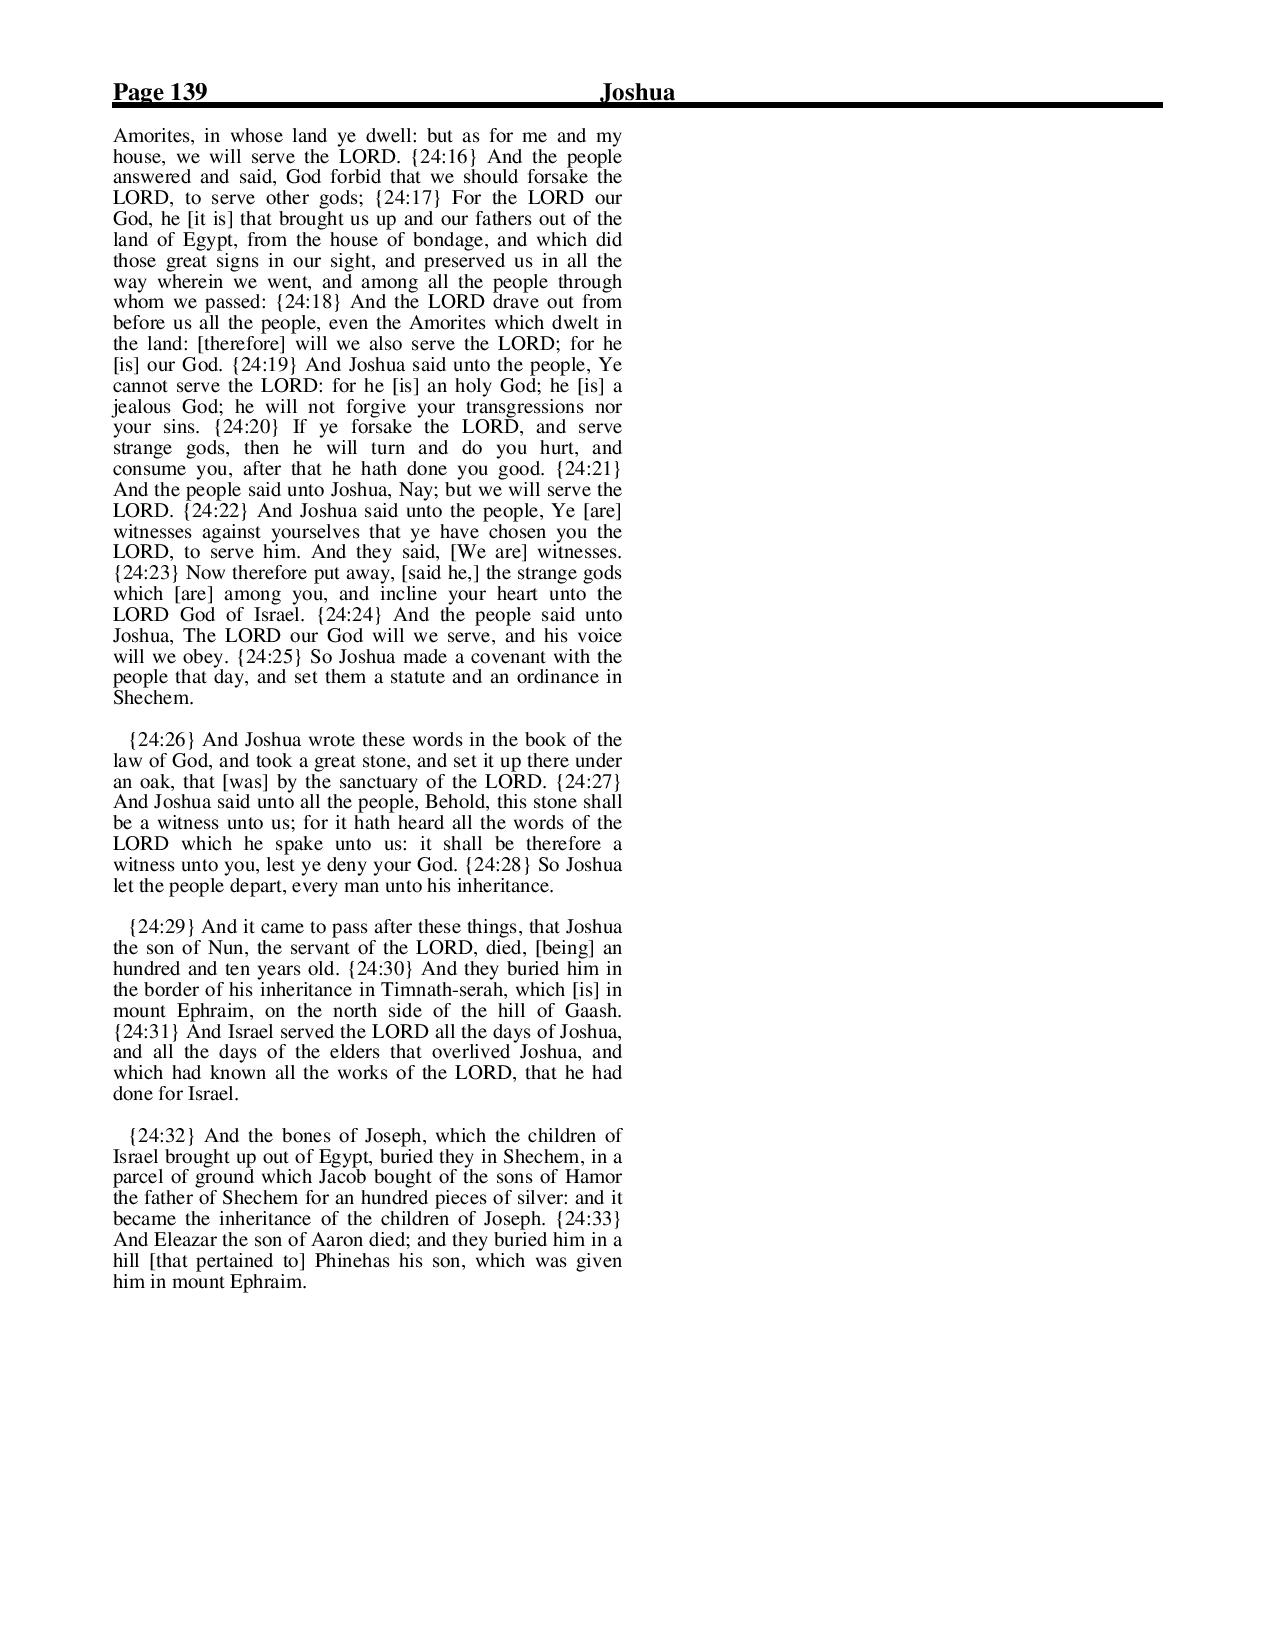 King-James-Bible-KJV-Bible-PDF-page-160